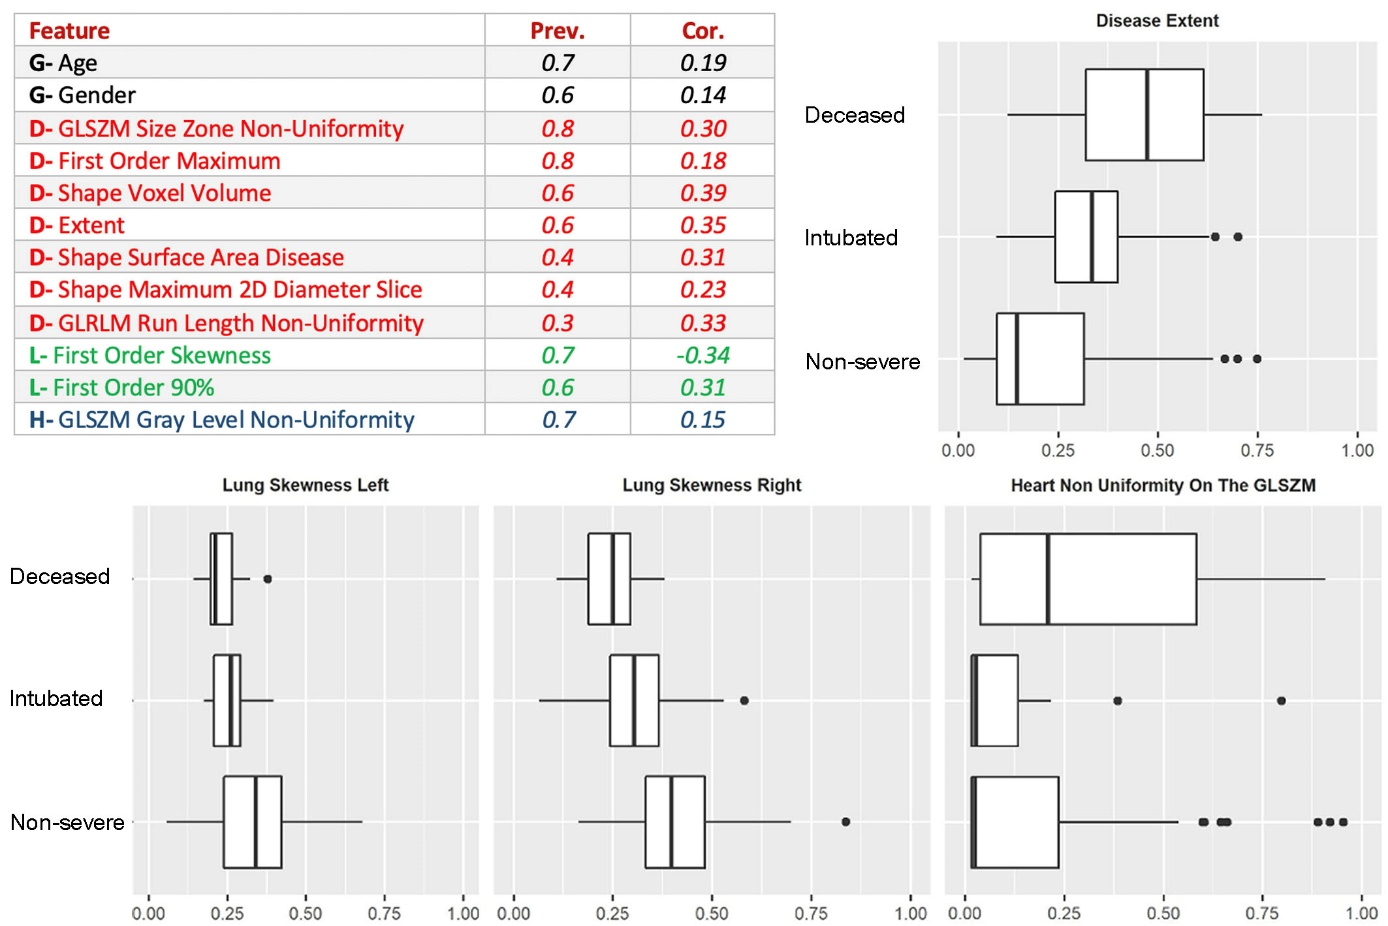 Discovery of – imaging-biomarkers through consensus. Generic variables (G: age, sex), disease related variables (D: extent, volume, maximum diameter, etc.), lung variables (L: skewness, etc.) as well as heart related variables (H: non-uniformity) have been automatically selected. The prevalence of the features as well as their distribution with respect to the different classes is presented for some of them, with rather clear separation and strong correlations with ground truth.